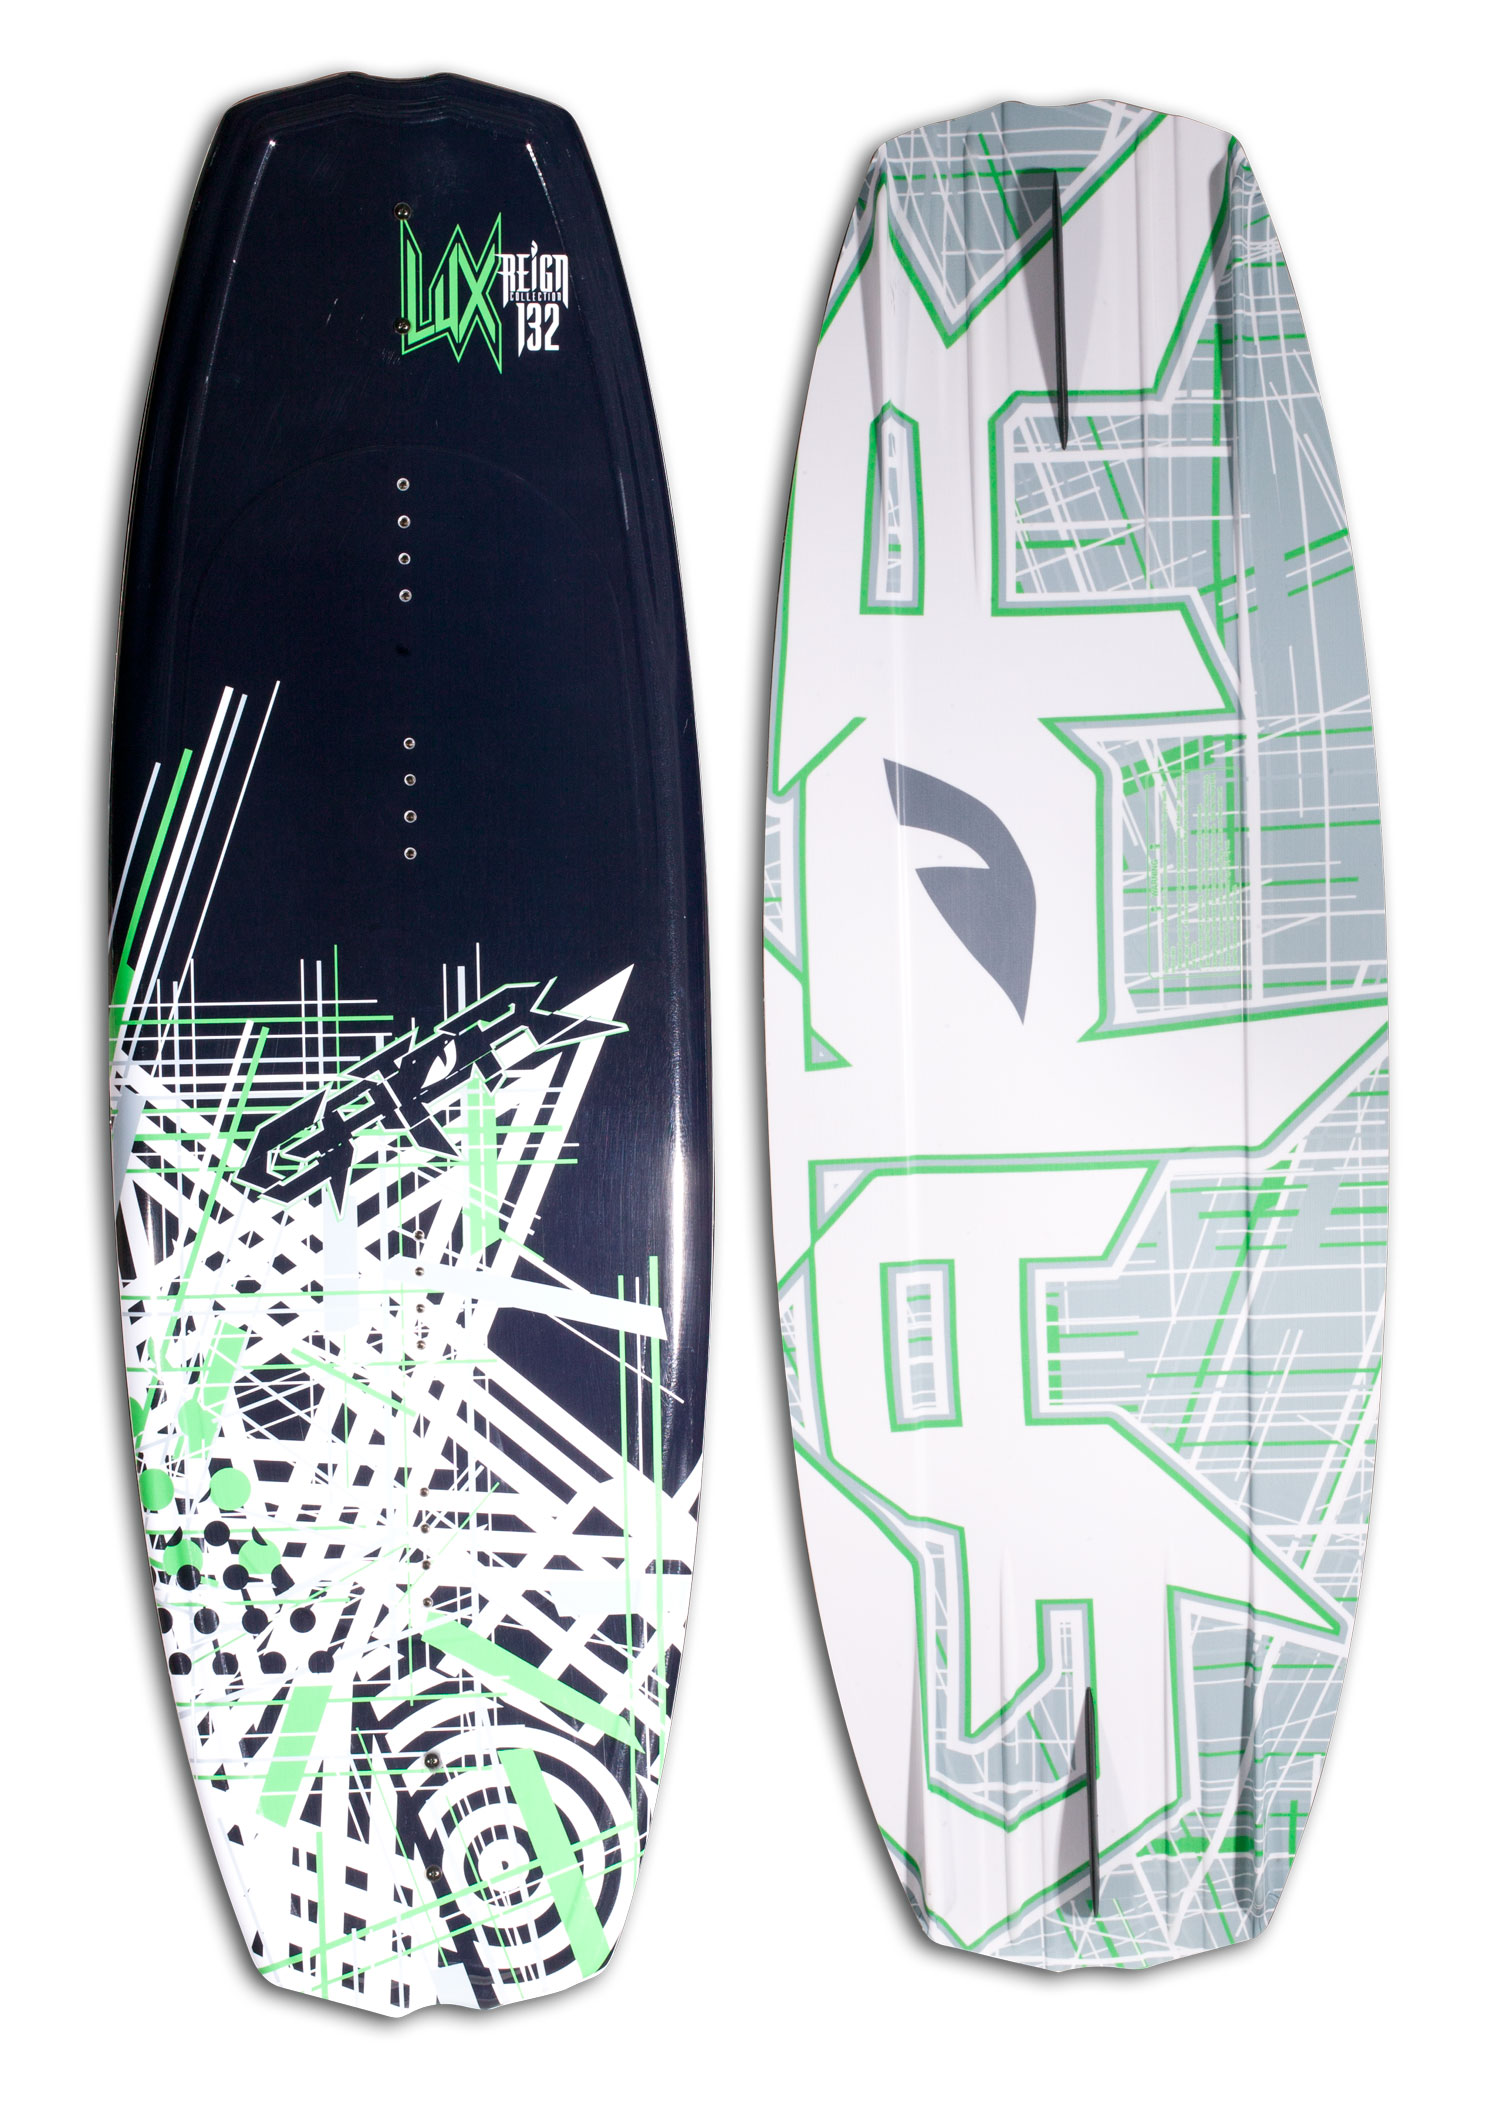 Gator Boards Lux Wakeboard 132 Womens by Gator Boards